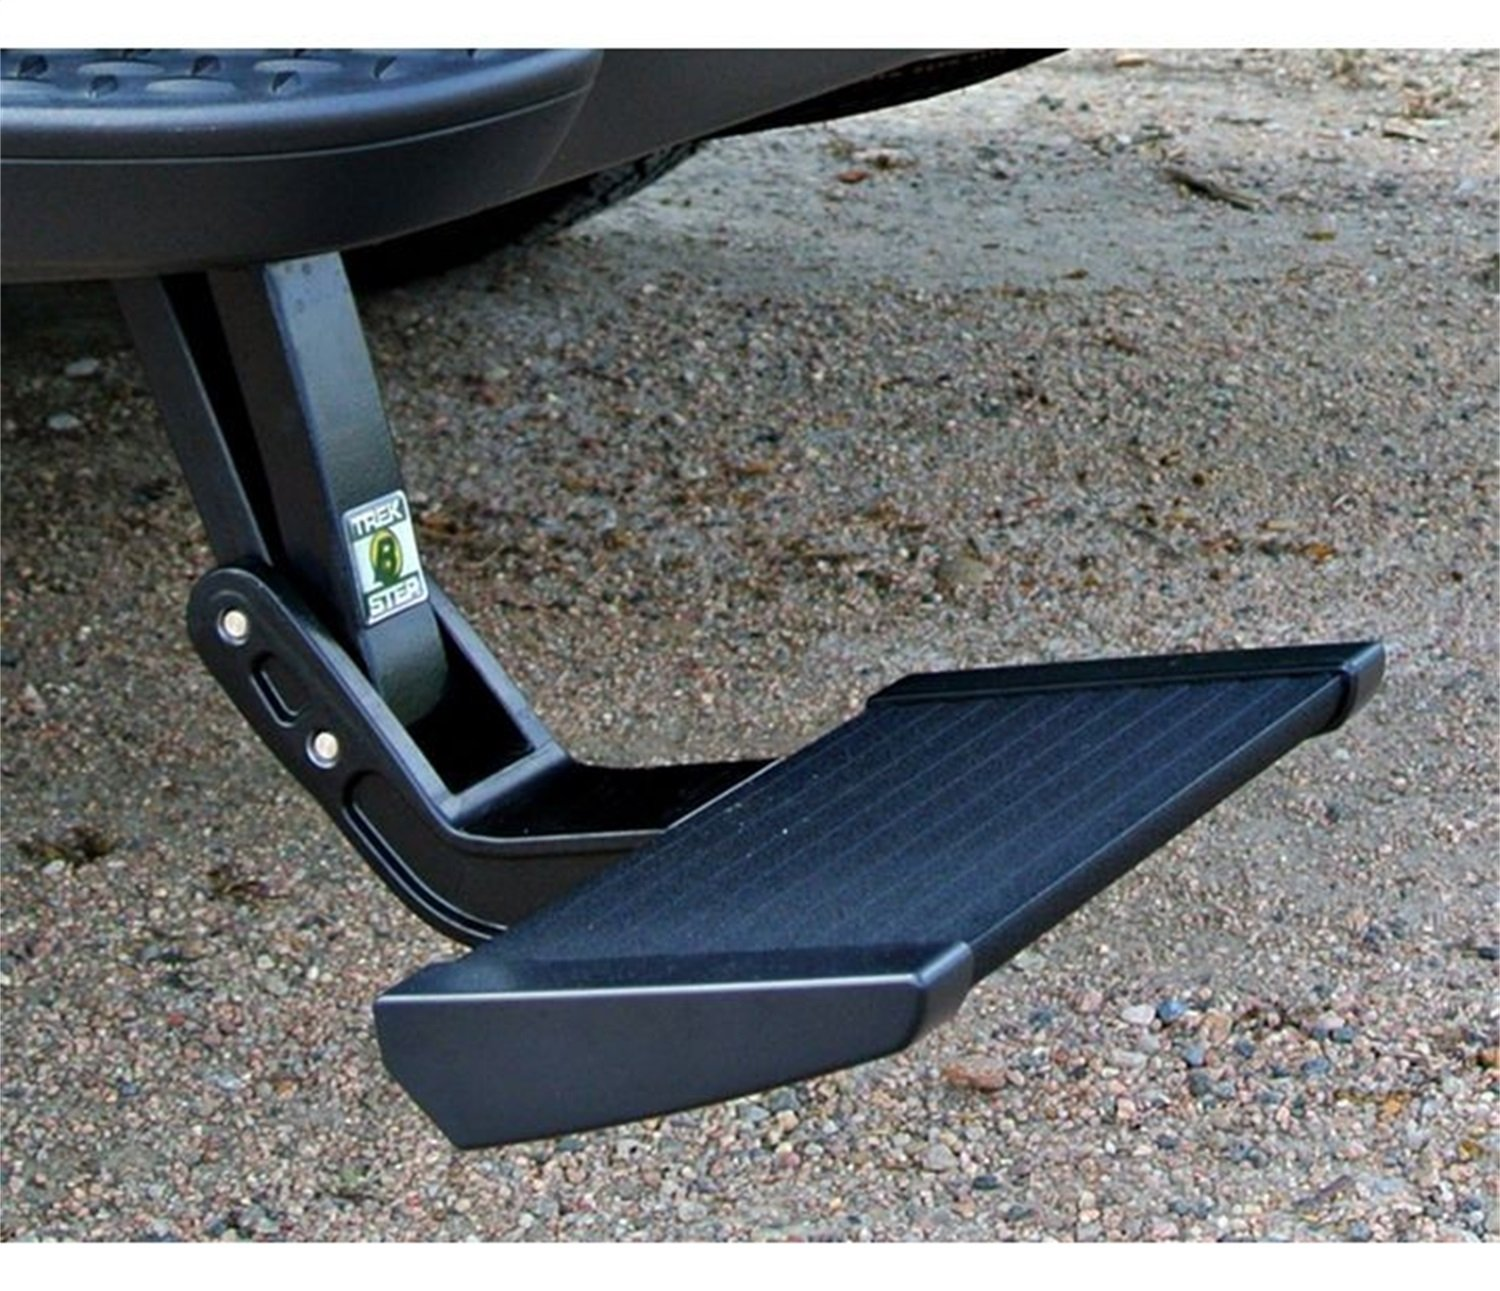 Bestop 75303-15 Rear-Mount TrekStep for 2000-2016 Ford F-250/F-350/F-450 Super Duty